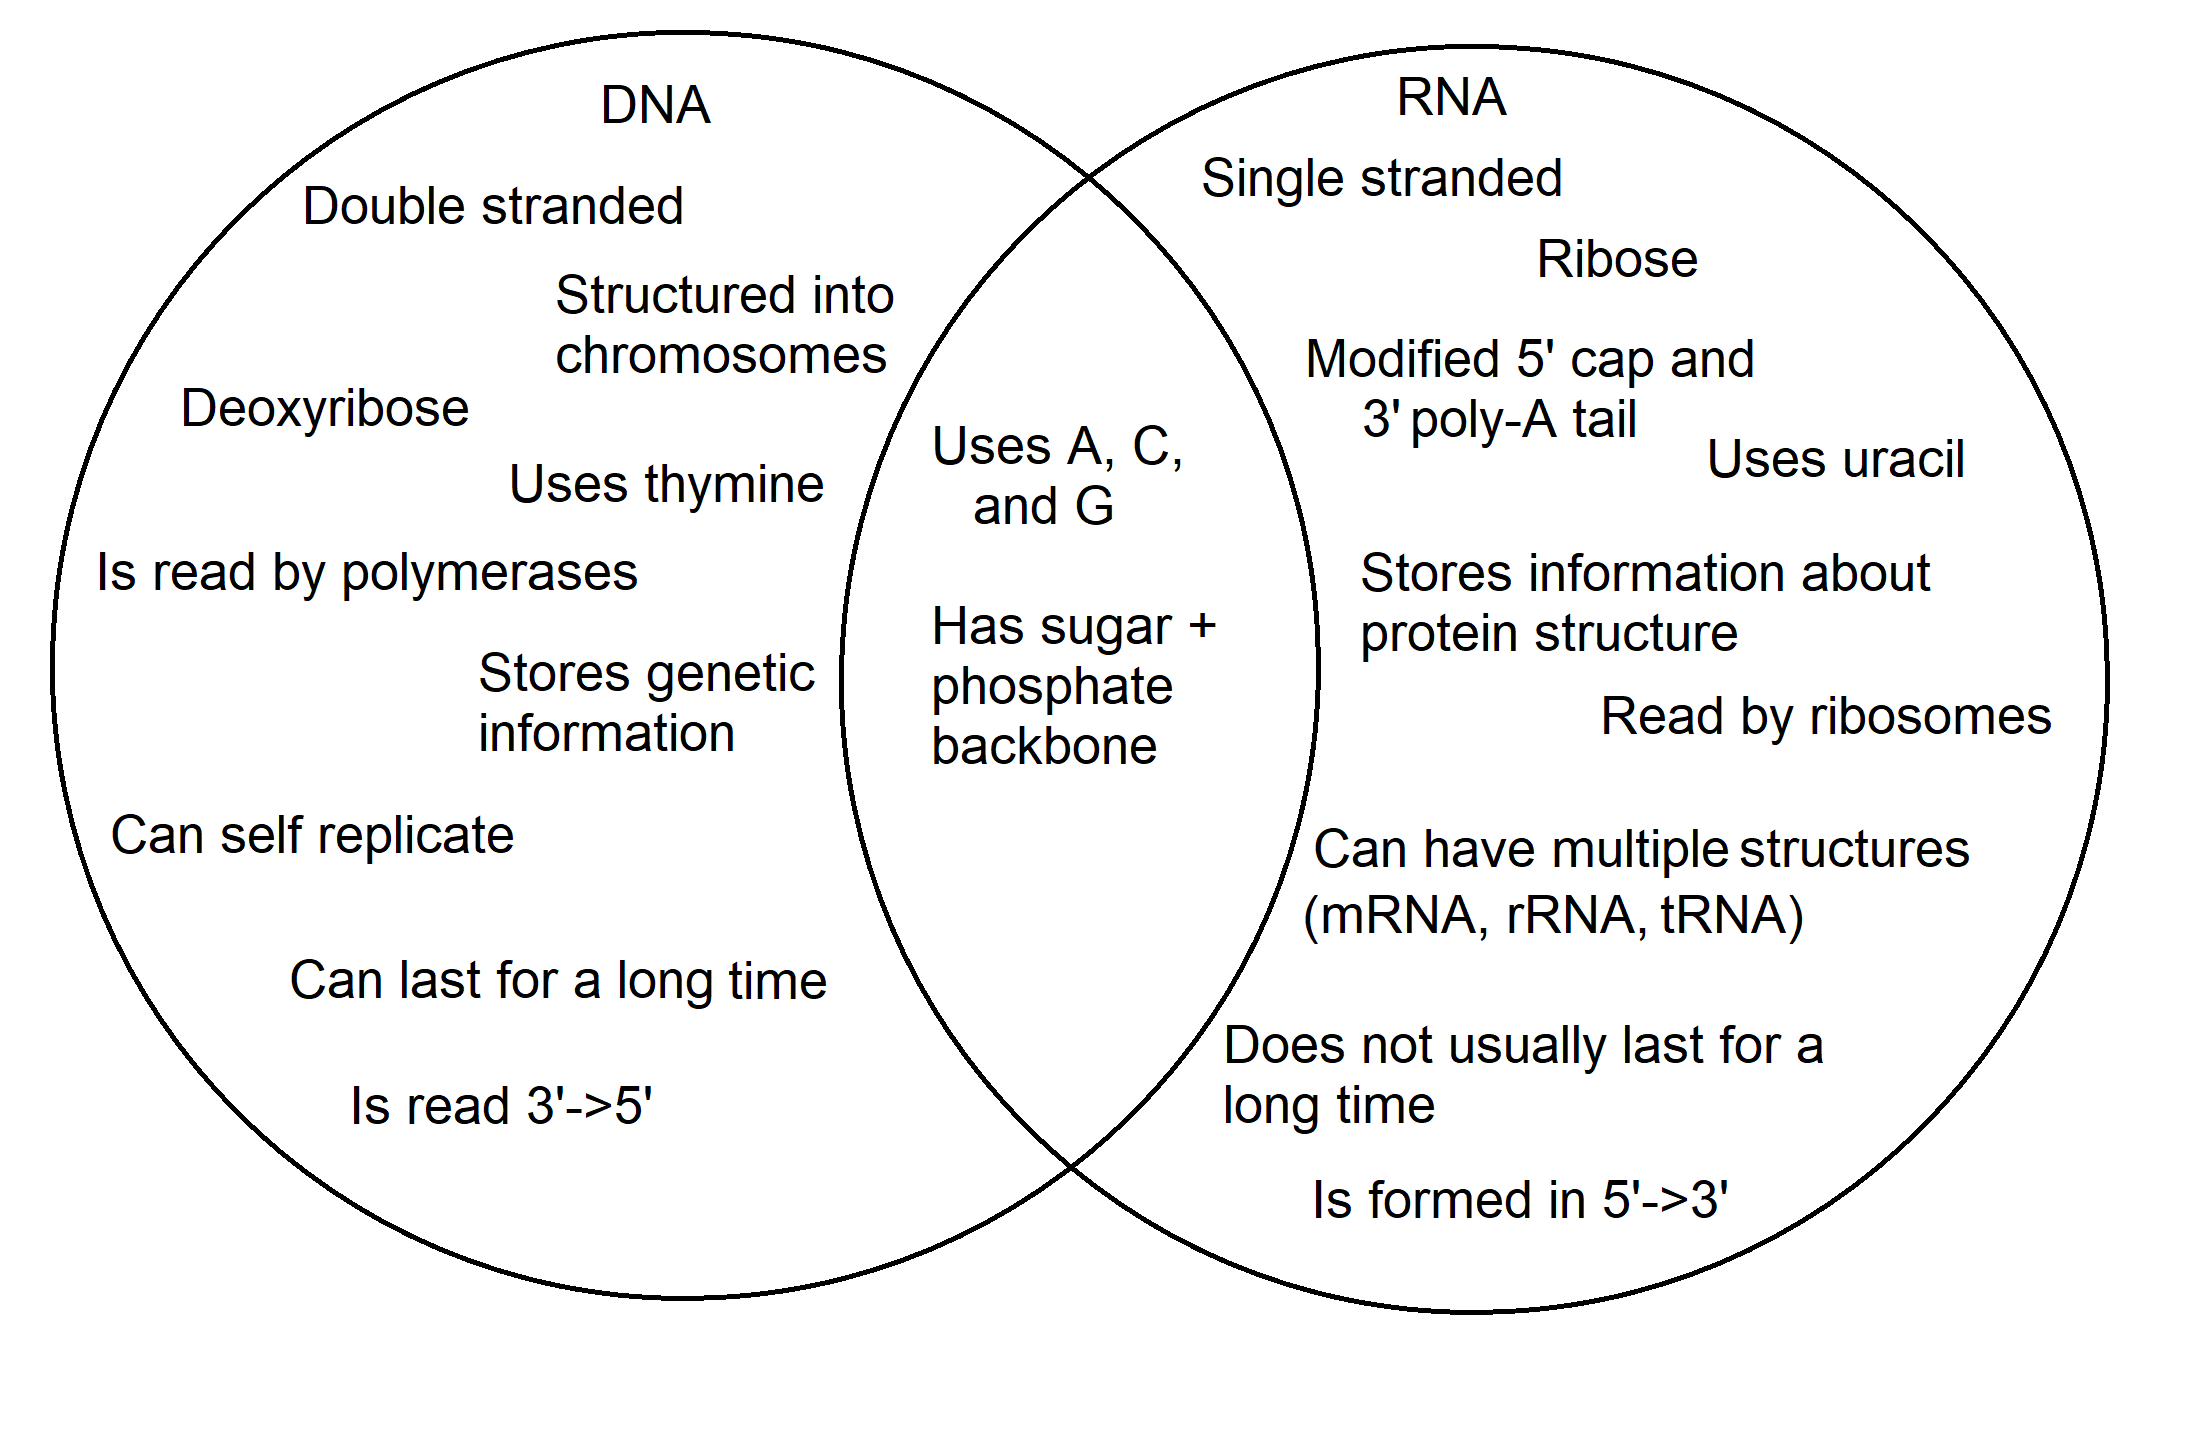 Dna Vs Rna Differences Amp Similarities